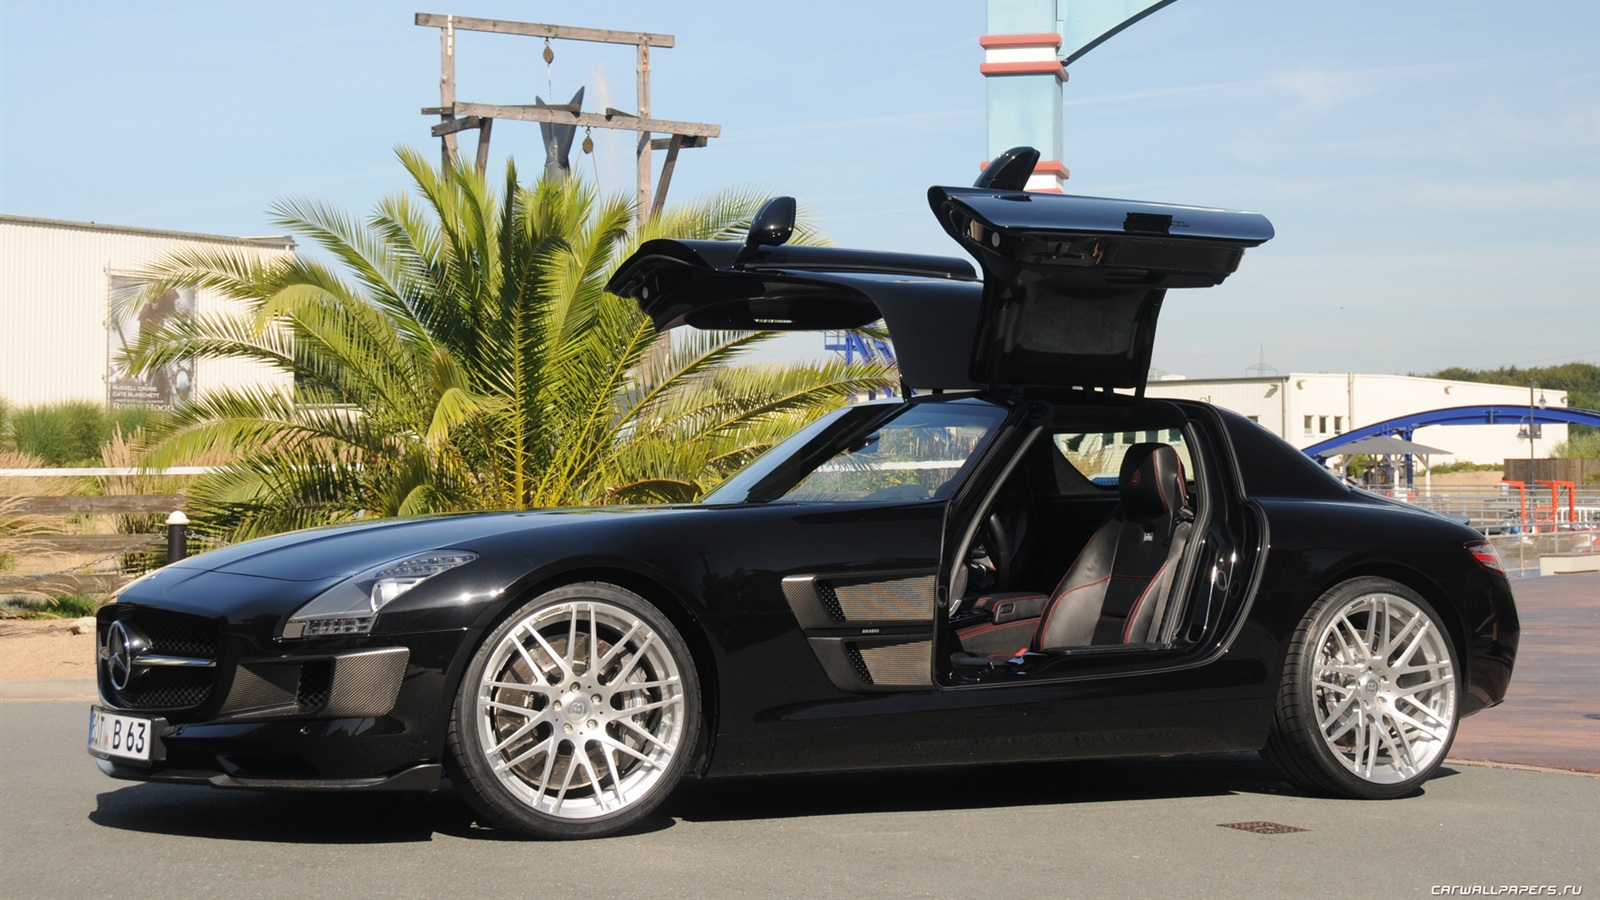 Mercedes Benz Sls Amg Roadster 6 together with 14506198757 in addition Mdp photo thumbnails furthermore Brabus Mercedes Benz SLS AMG 2010 1600x900 further 1603. on mercedes benz sls amg